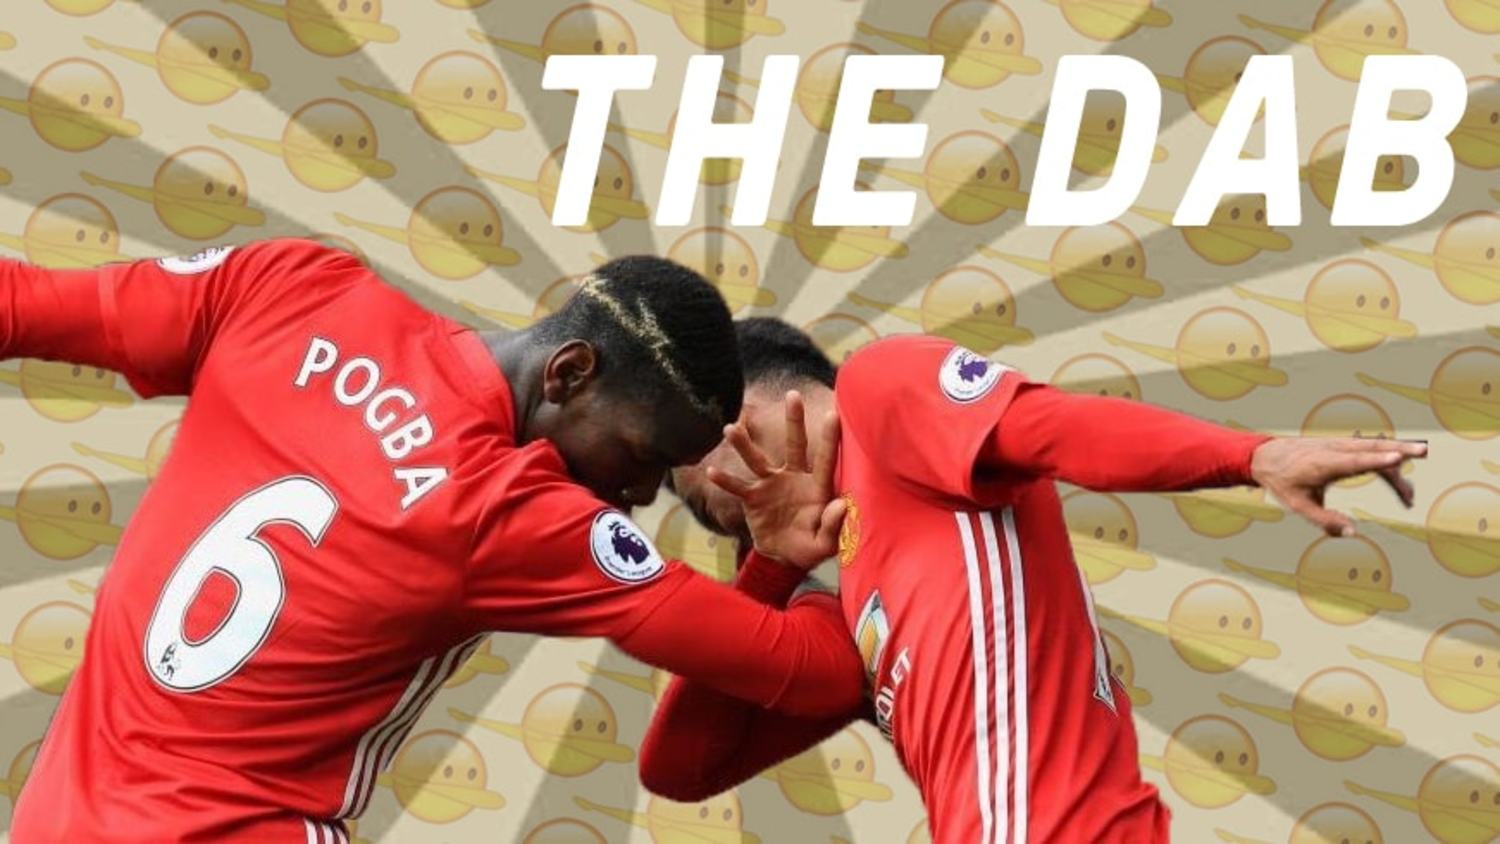 The Dab - How The F**k Did It Come To This?